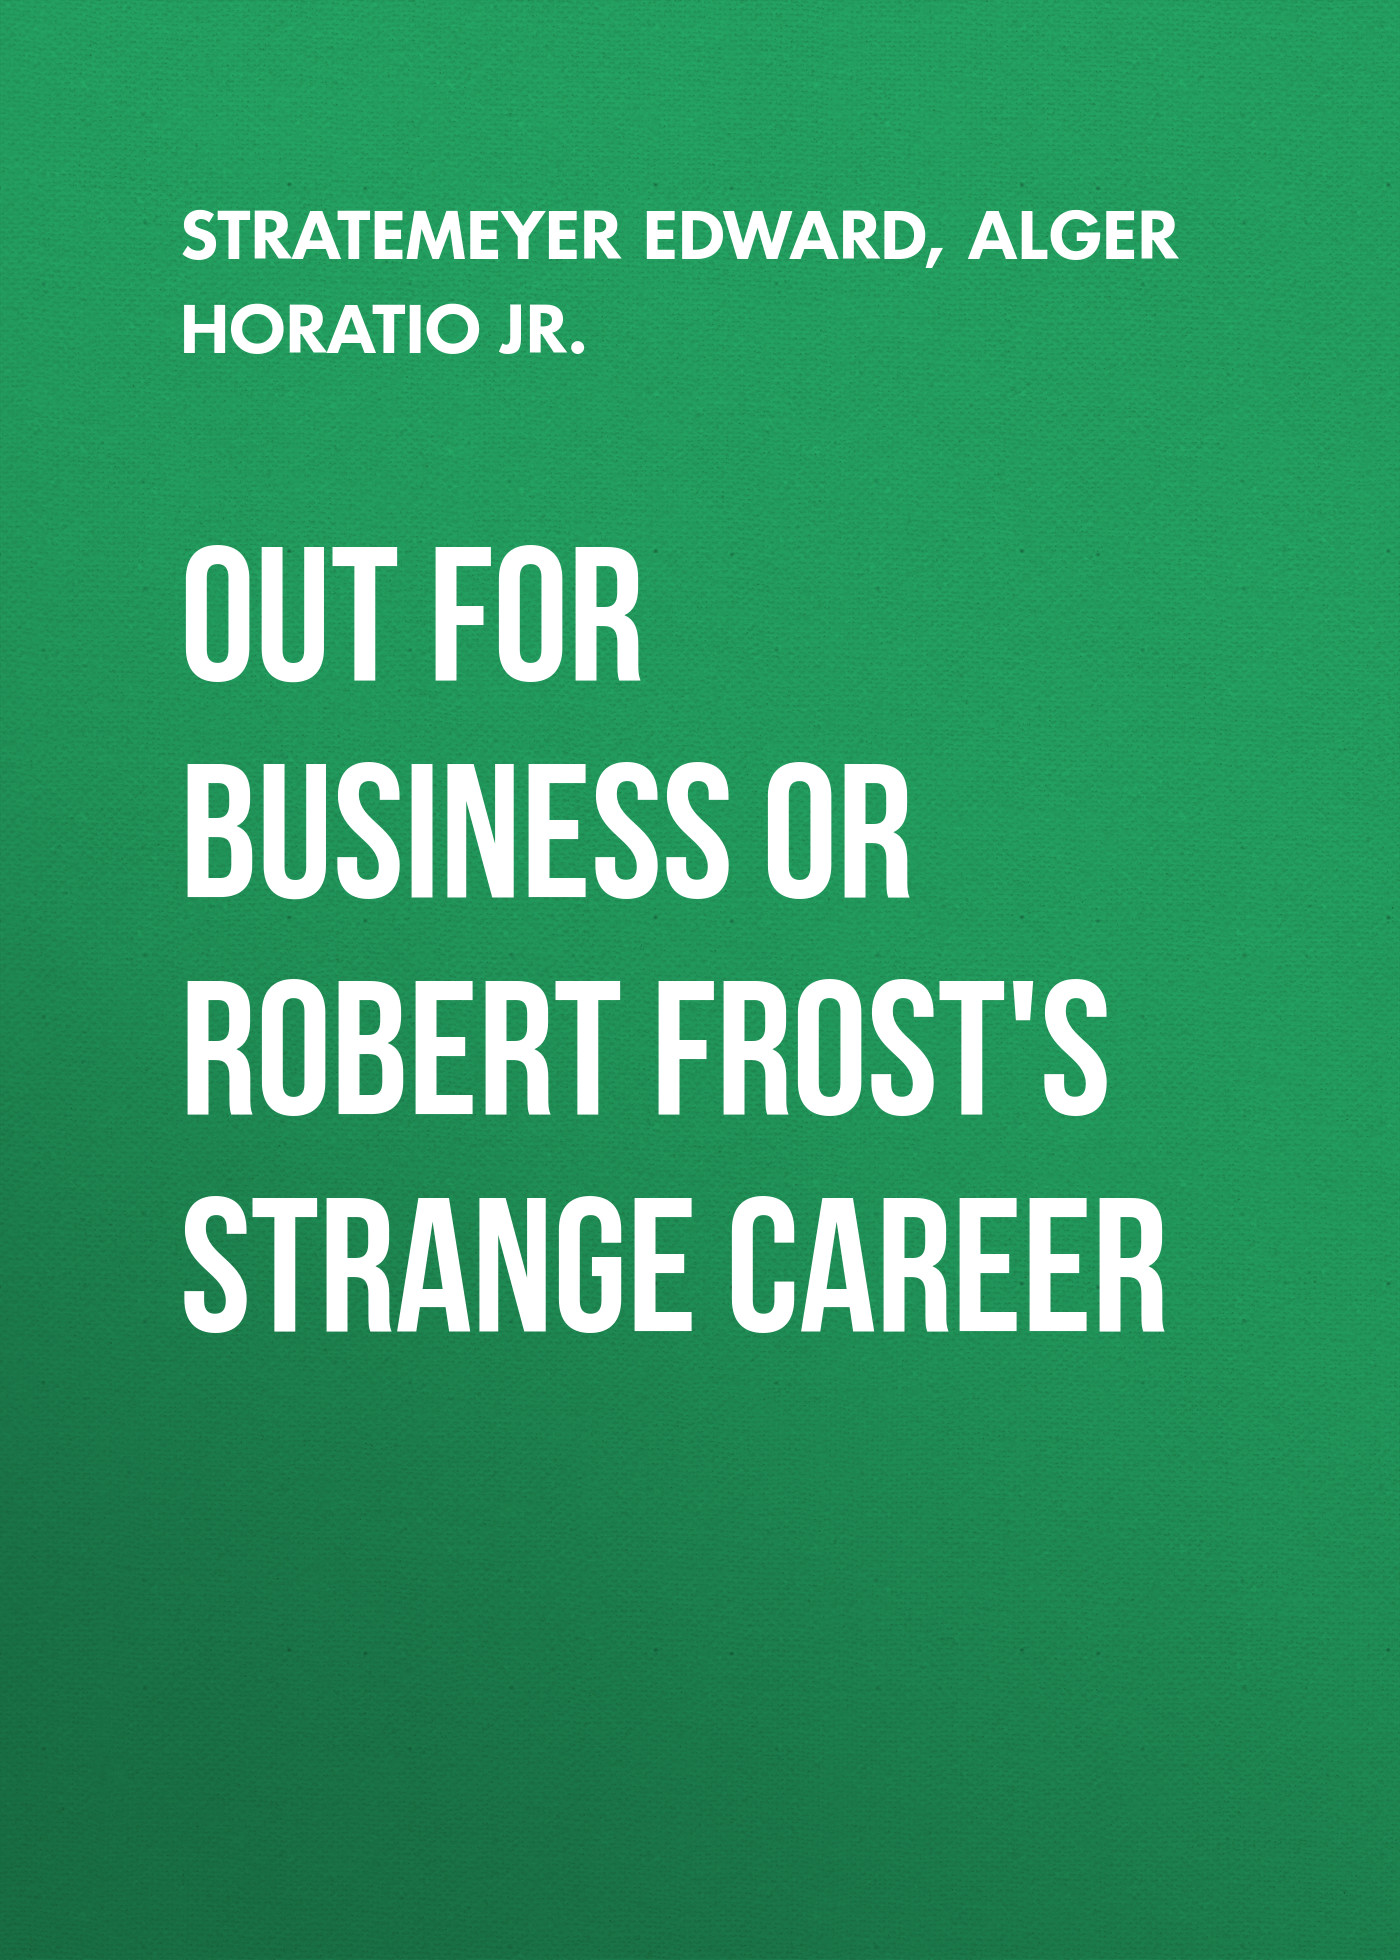 Stratemeyer Edward Out For Business or Robert Frost's Strange Career